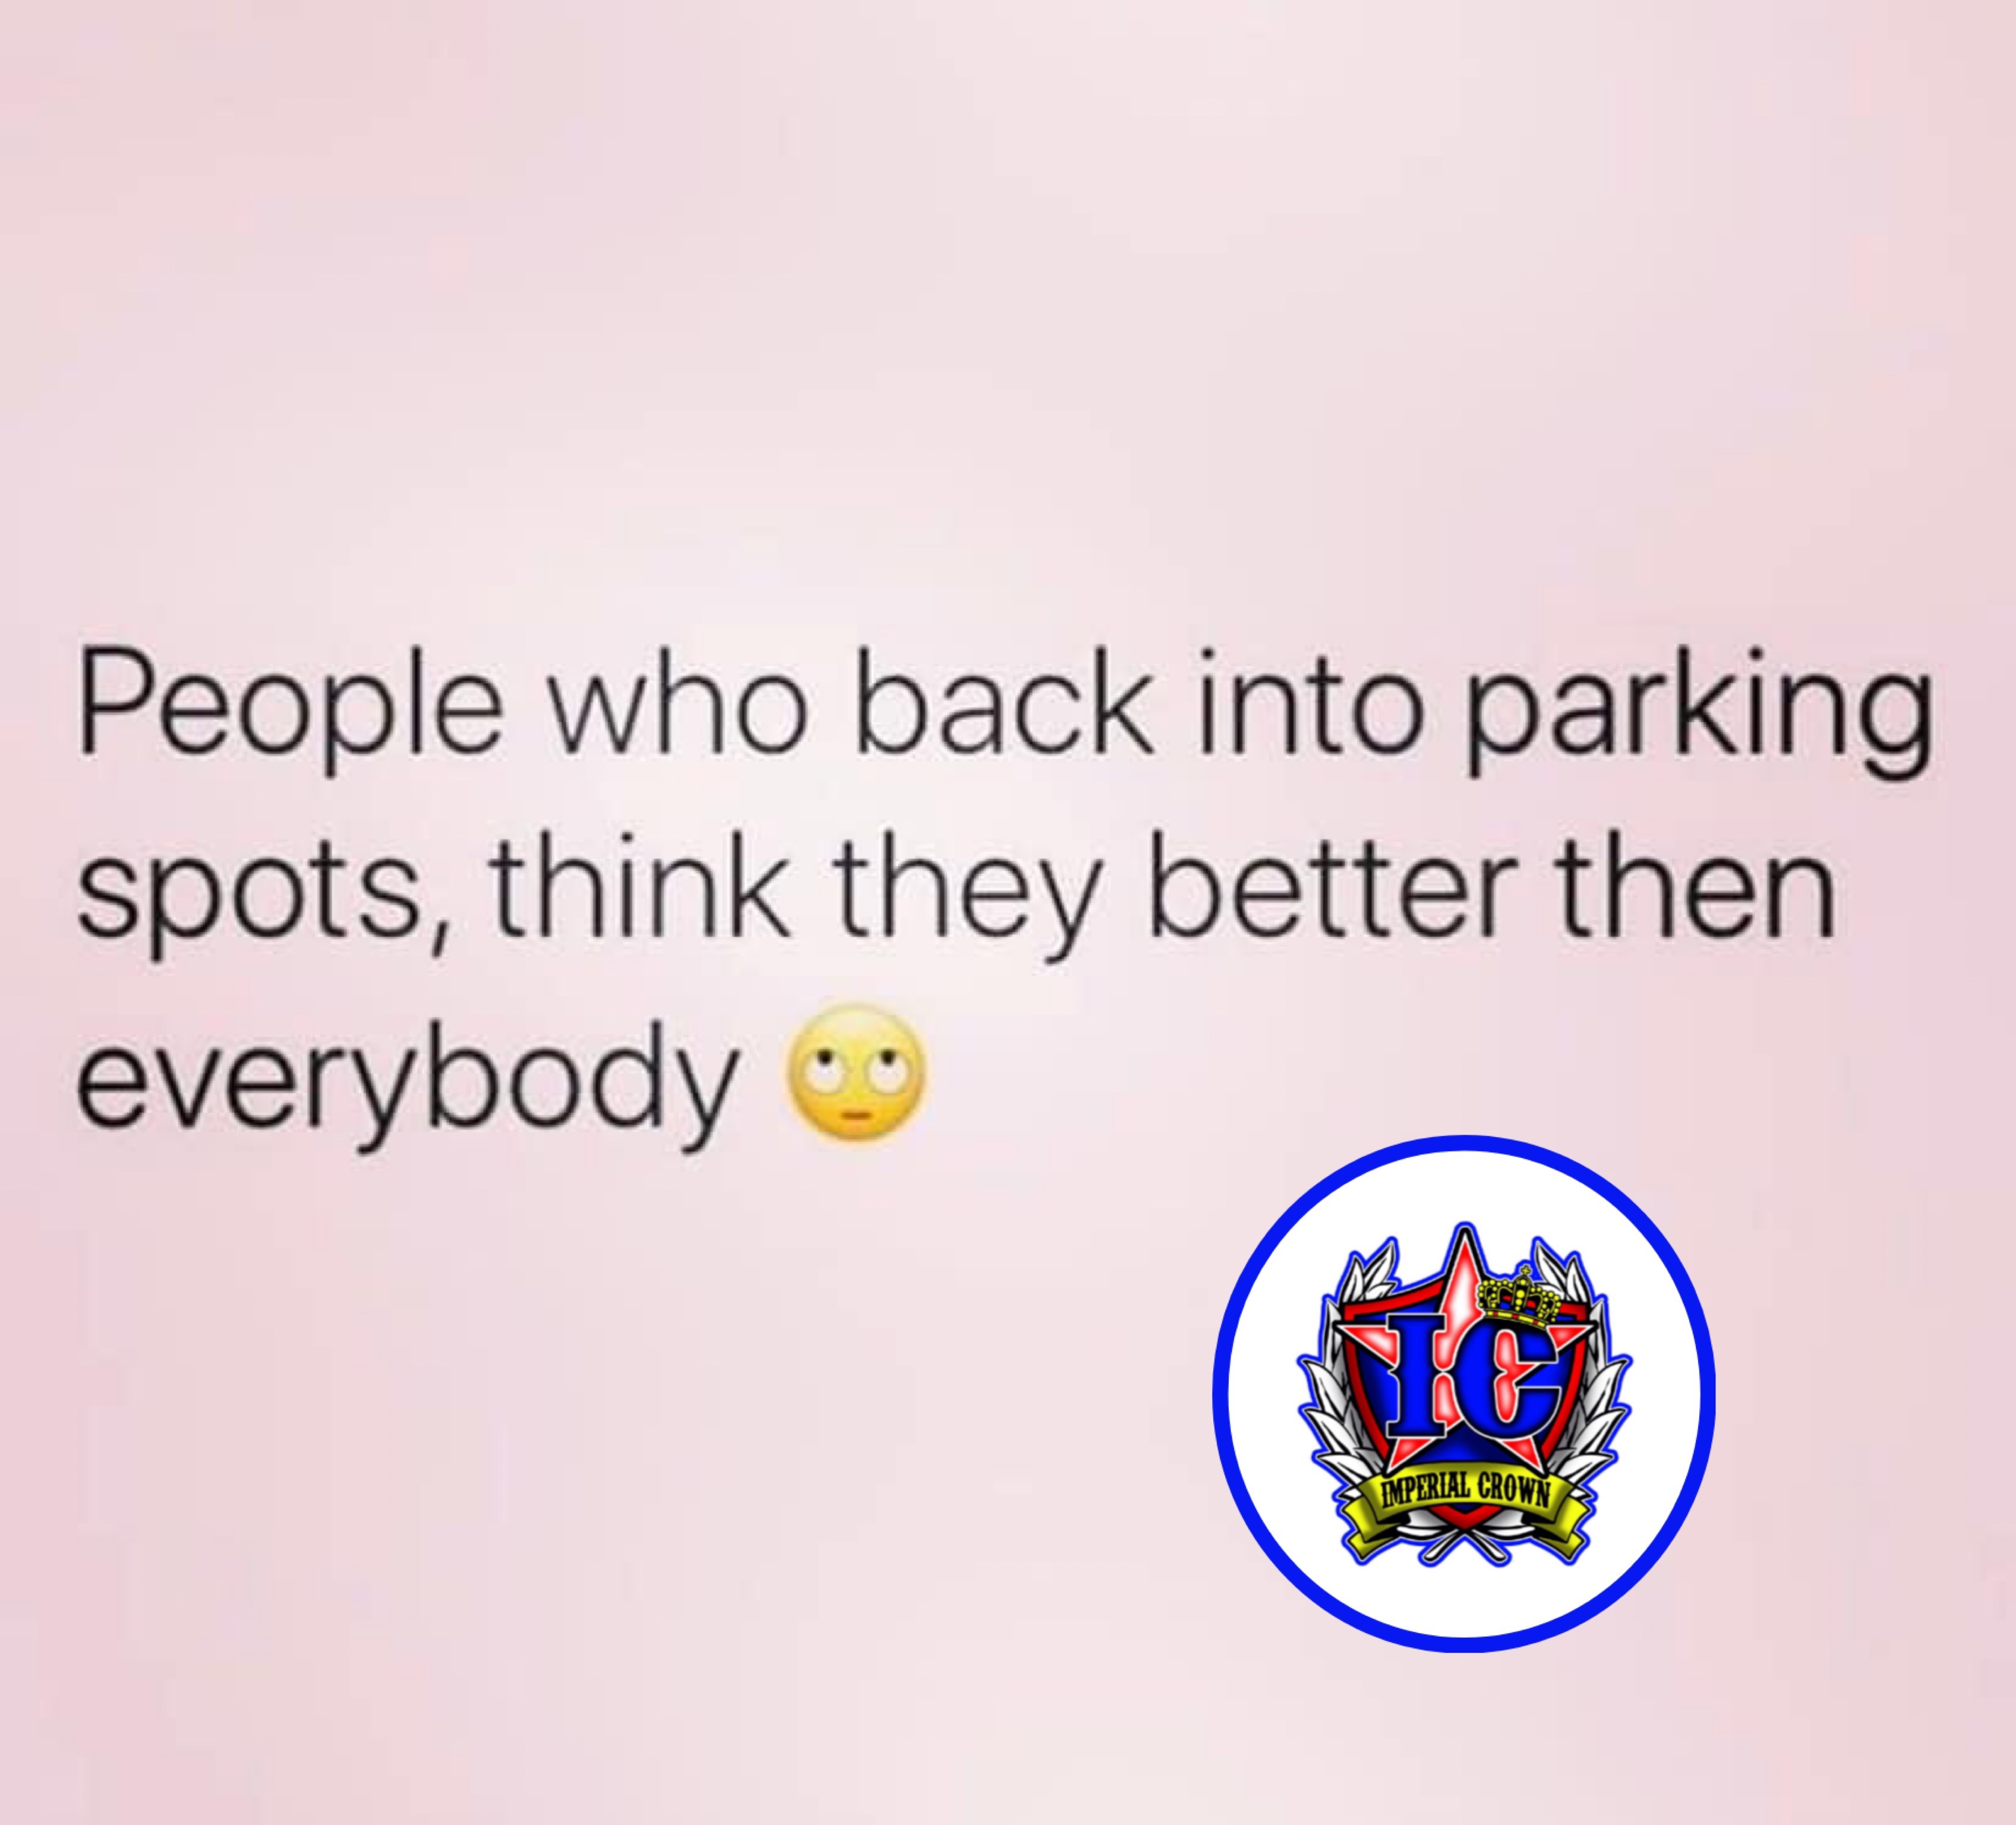 People who back into parking spots think they better then everybody